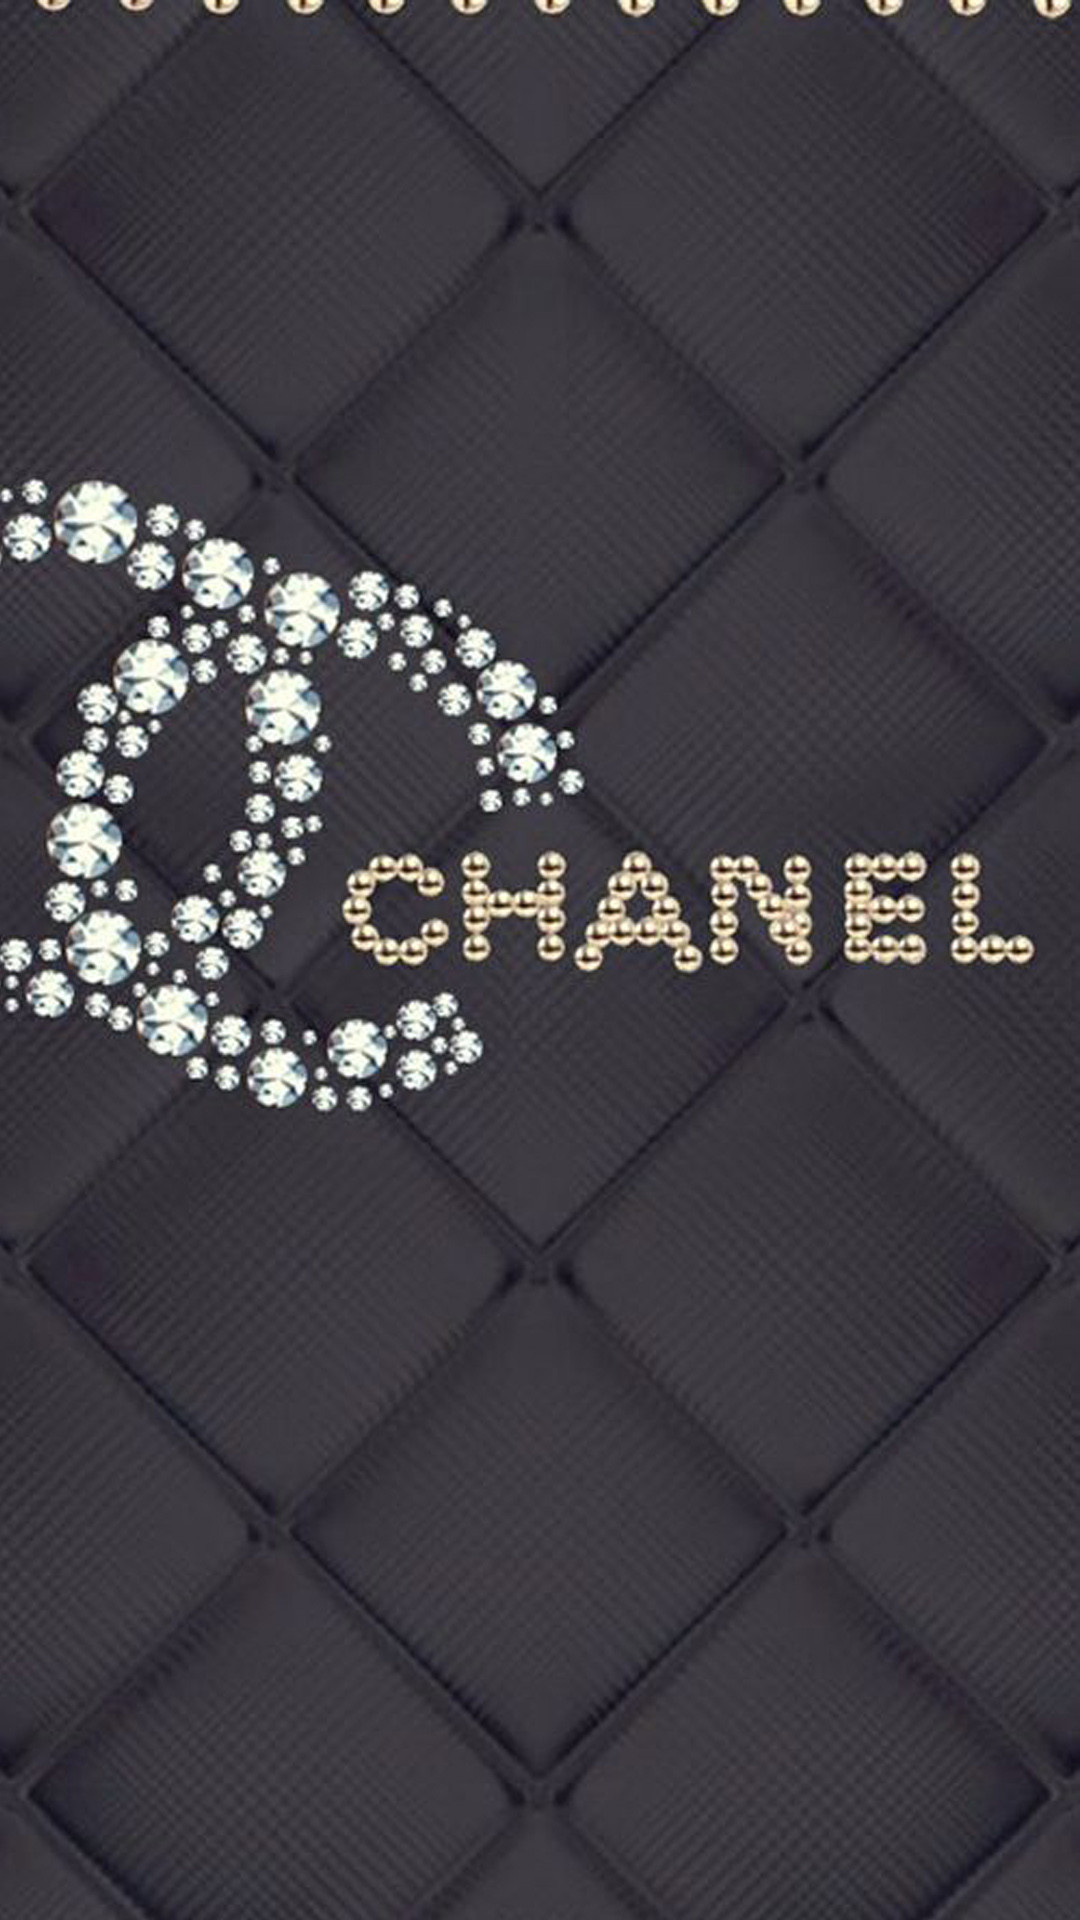 Wallpaper Girl Pink Iphone Chanel Wallpapers Hd 70 Images